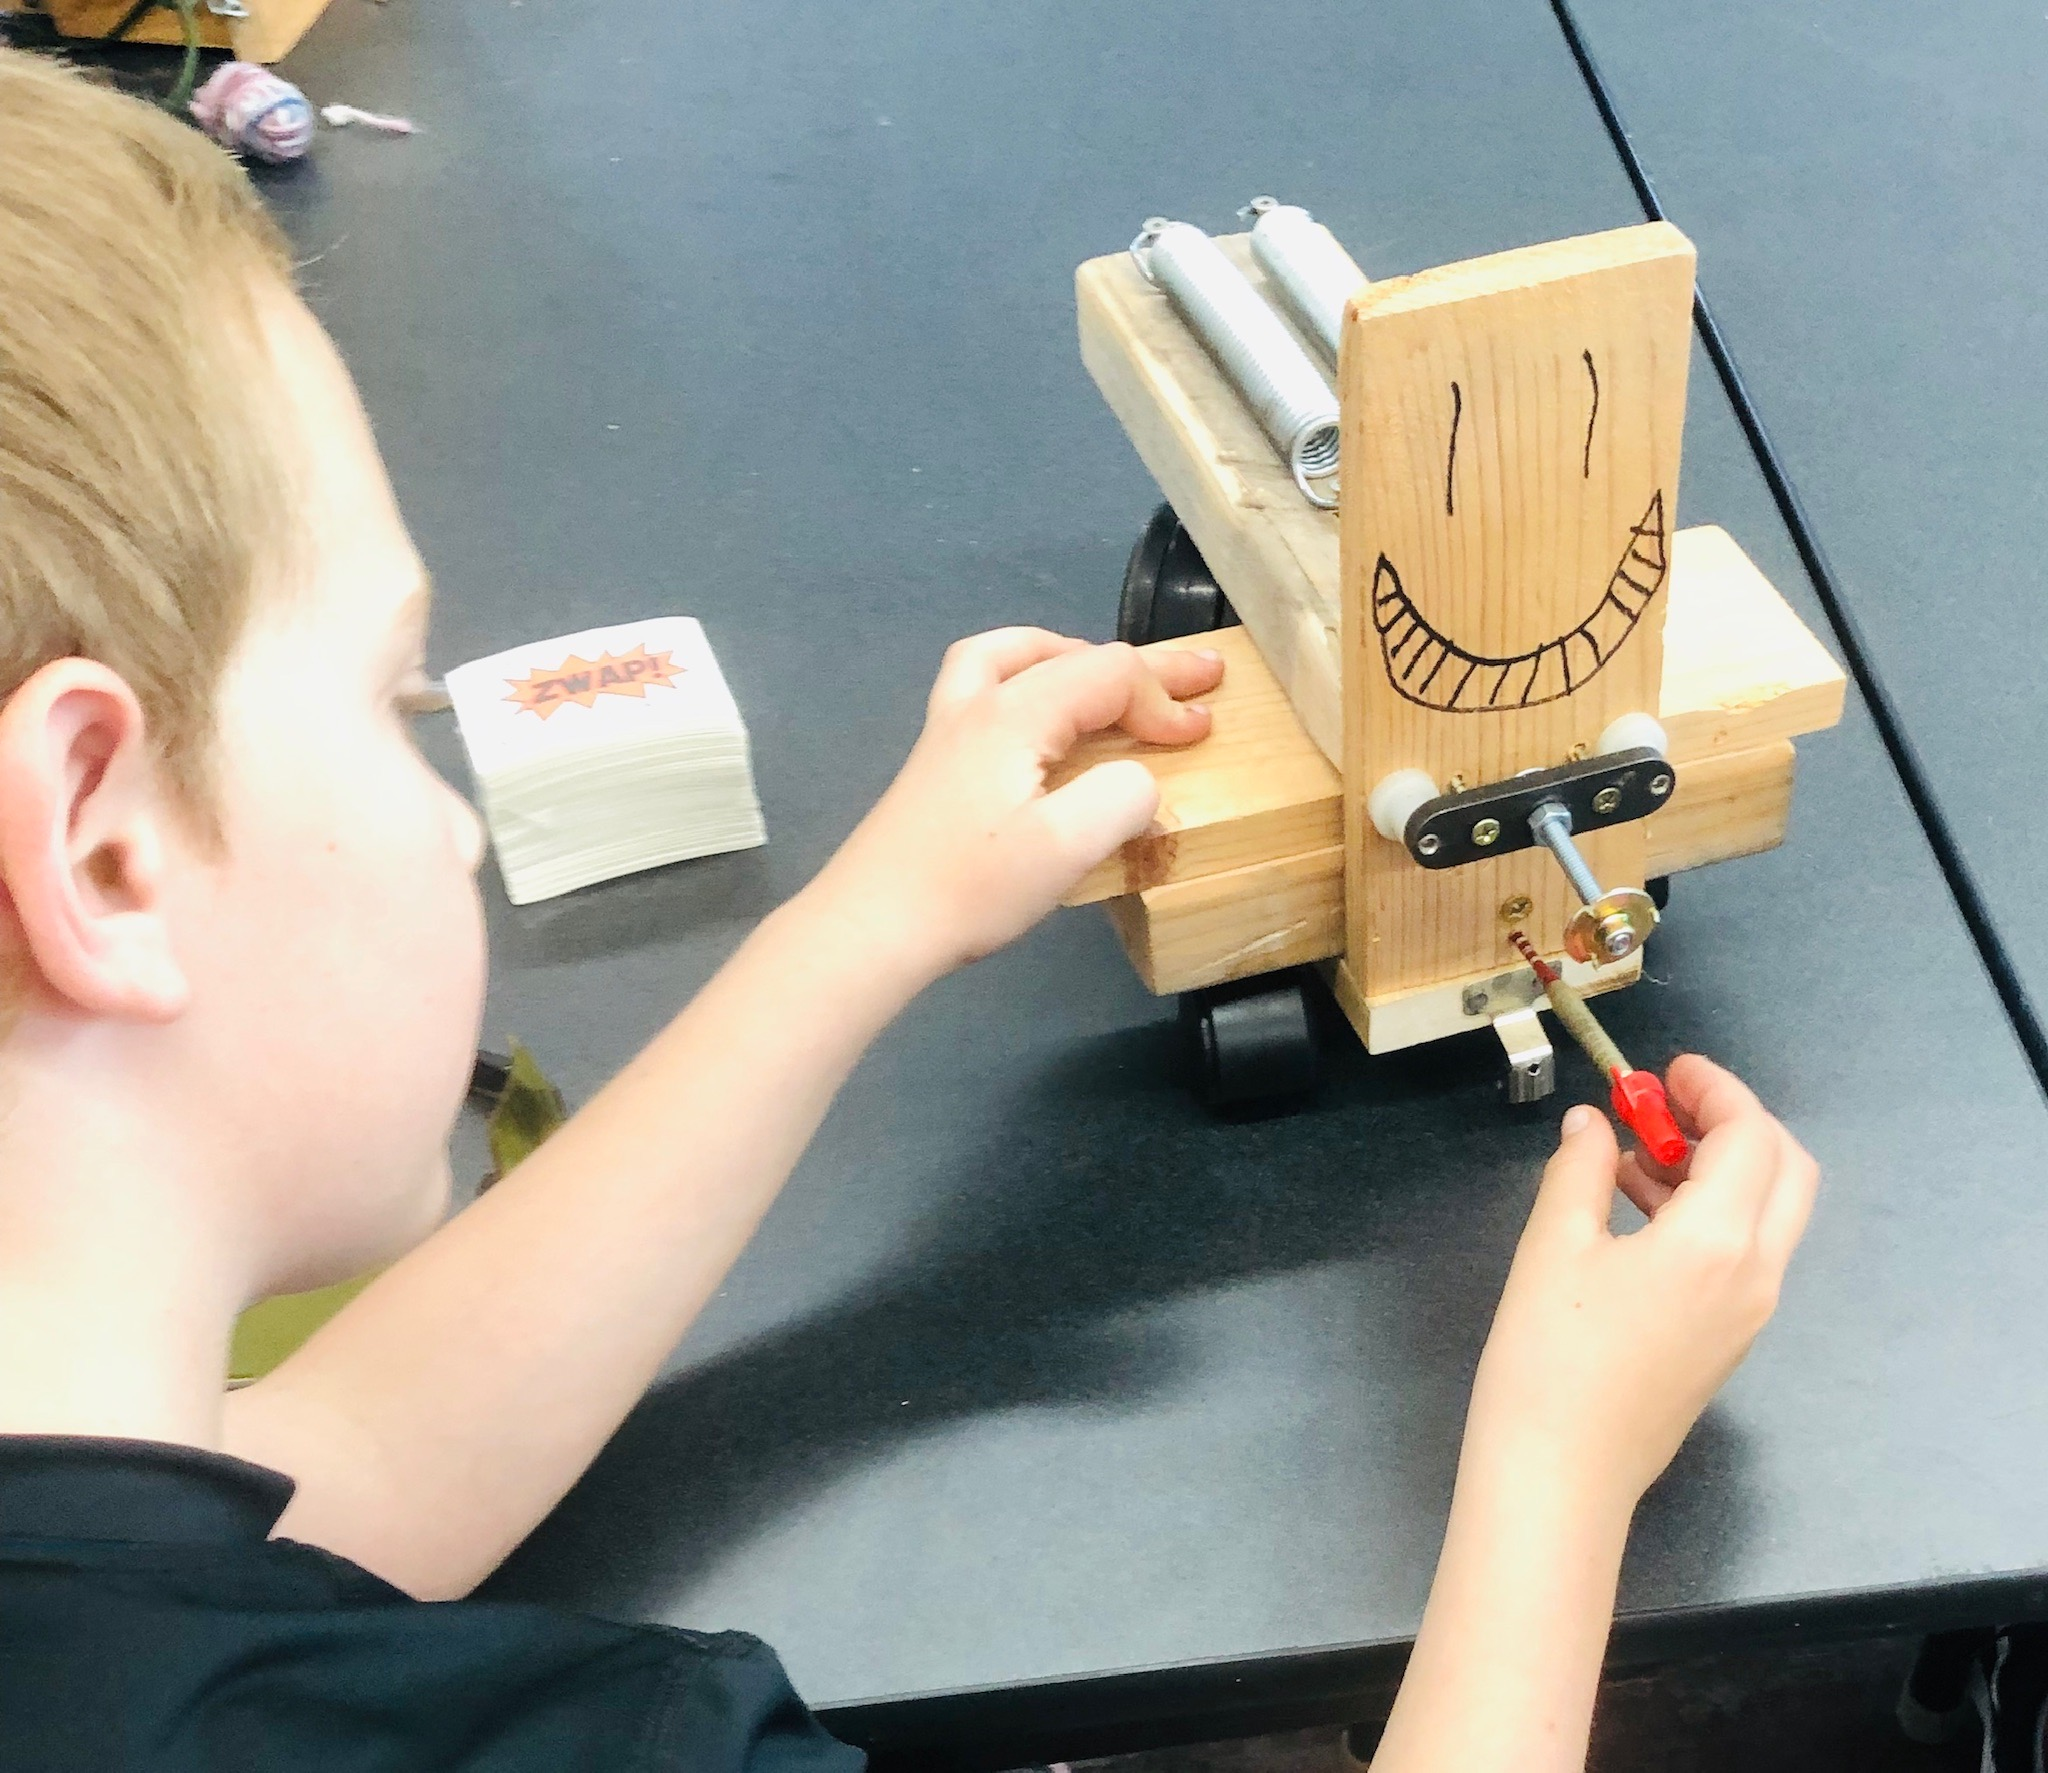 PIR Day Camp: All Day Kinetic Art